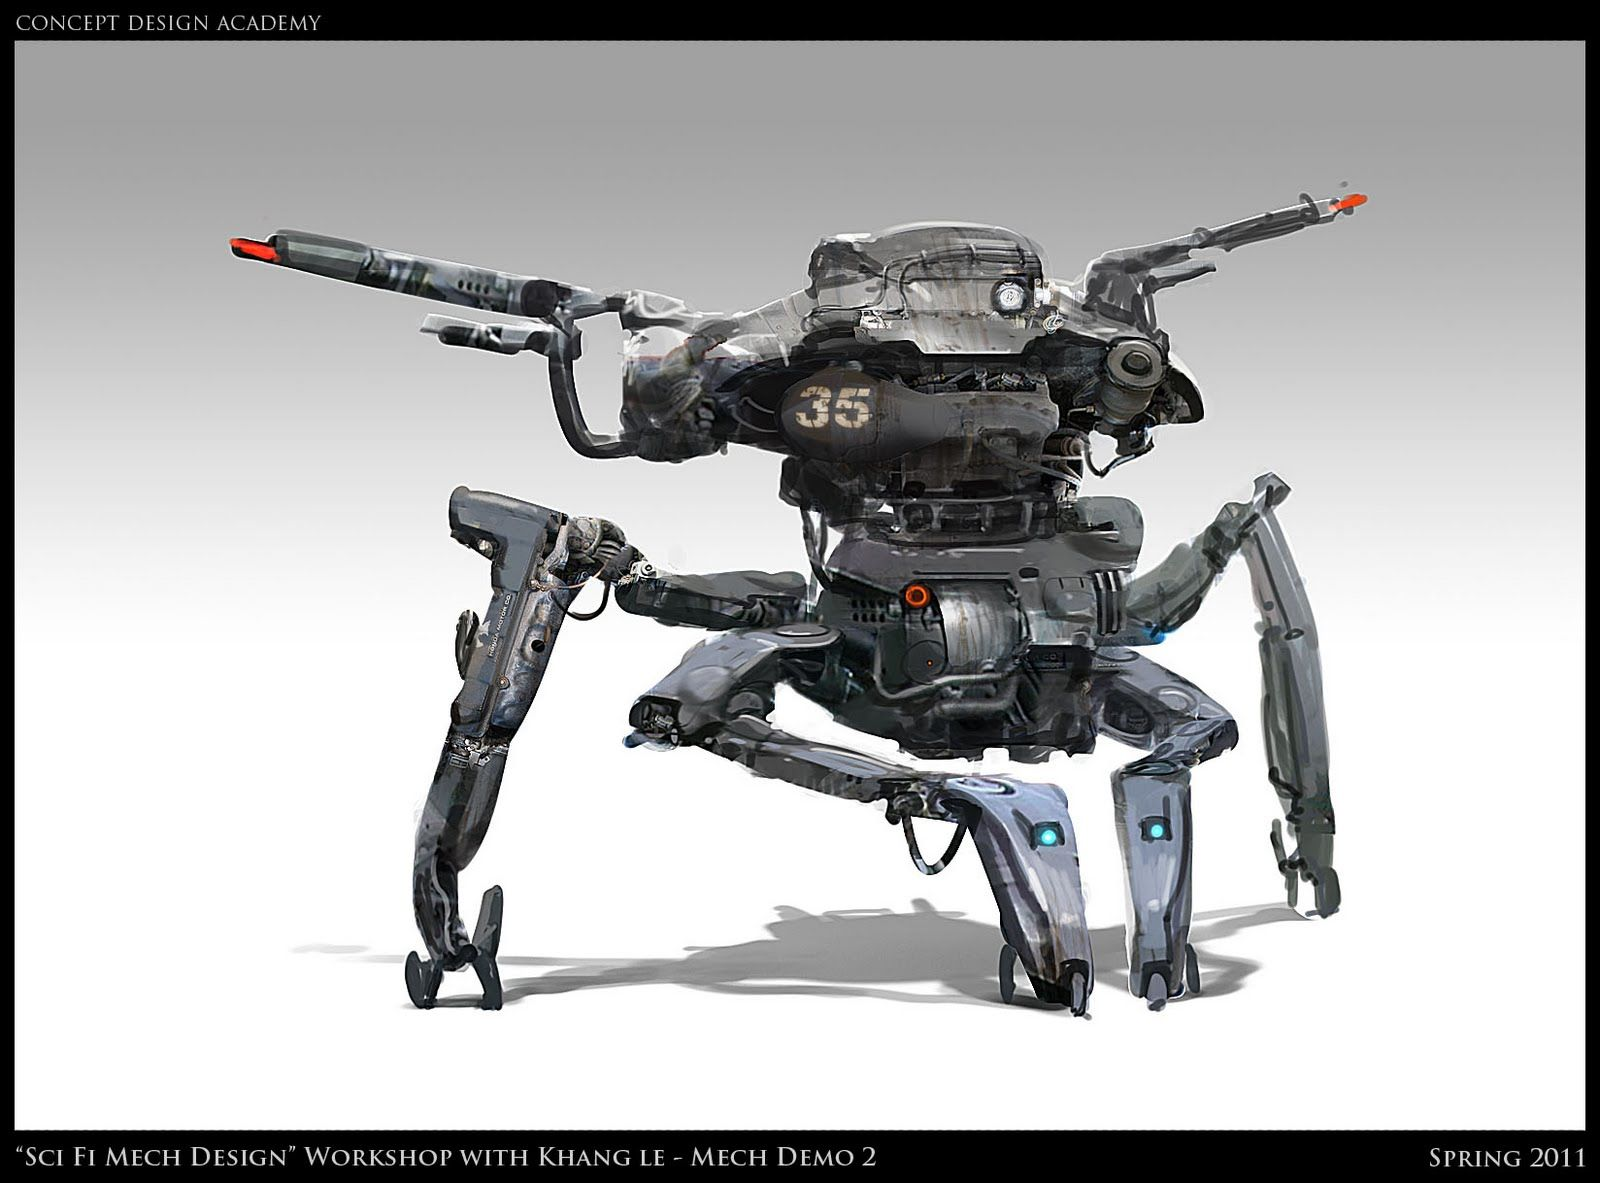 Concept Design Academy: Photos and Demo Images from Sci Fi Mech Design Workshop